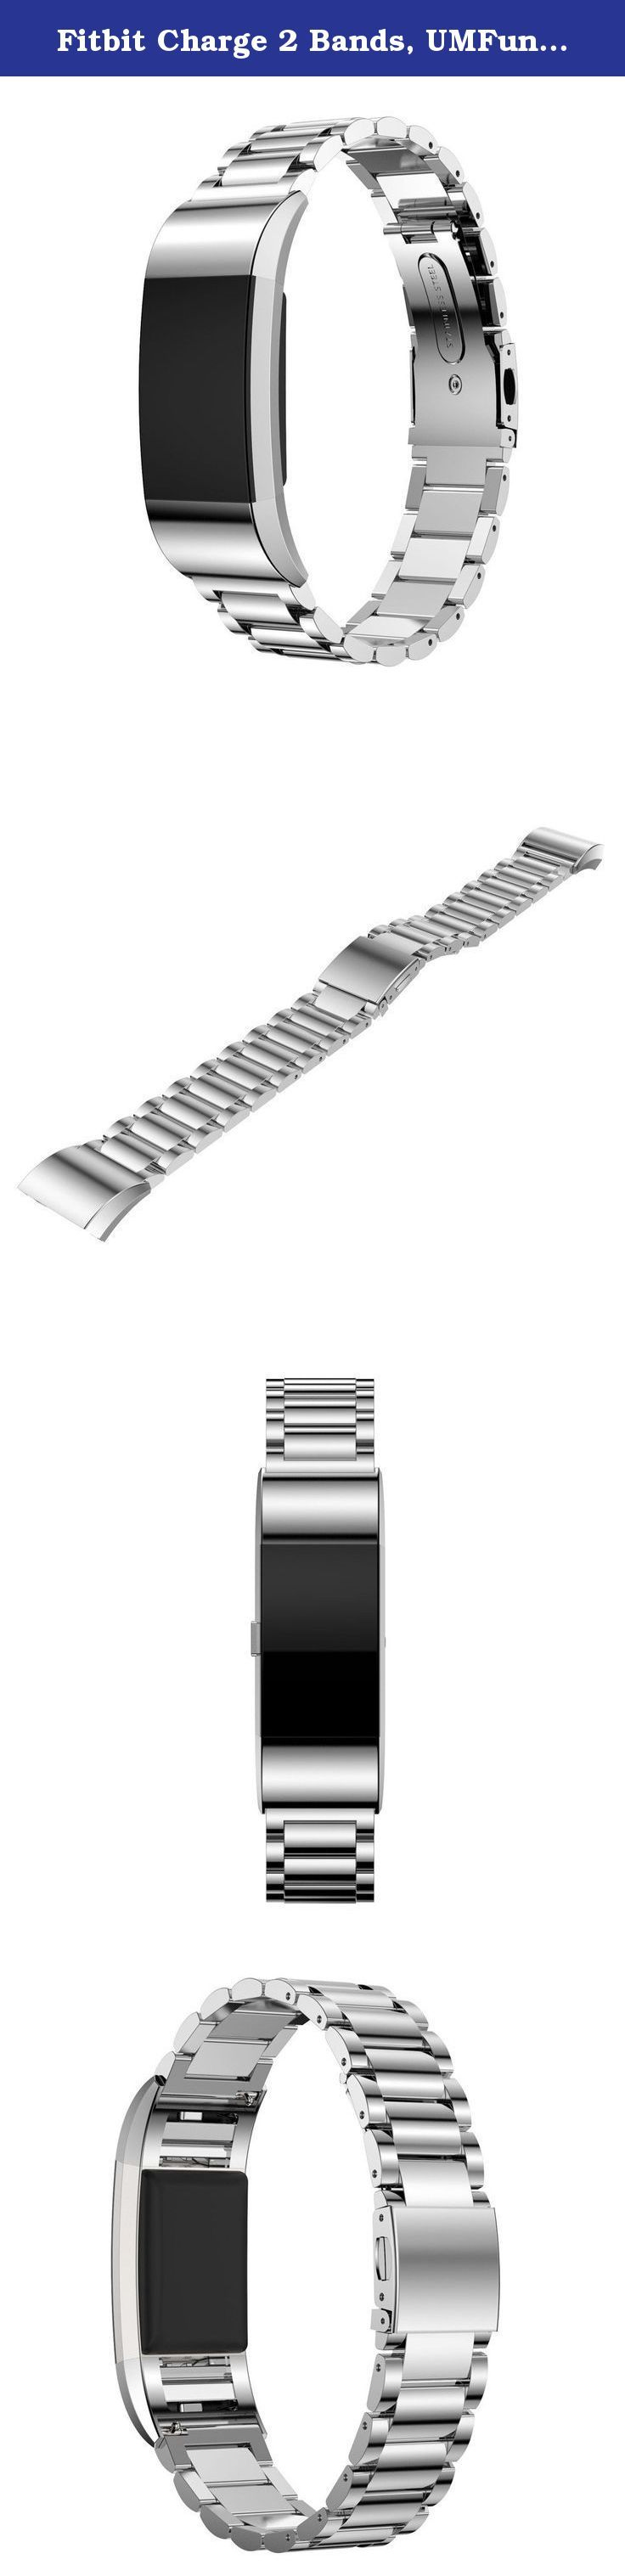 Fitbit Charge 2 Bands, UMFun Stainless Steel Bracelet Smart Watch Band Strap For Fitbit Charge 2 (Silver). ☛: Package Include: ☛: 1PC Stainless Steel Bracelet Smart Watch Band Strap For Fitbit Charge 2 (without retail package).